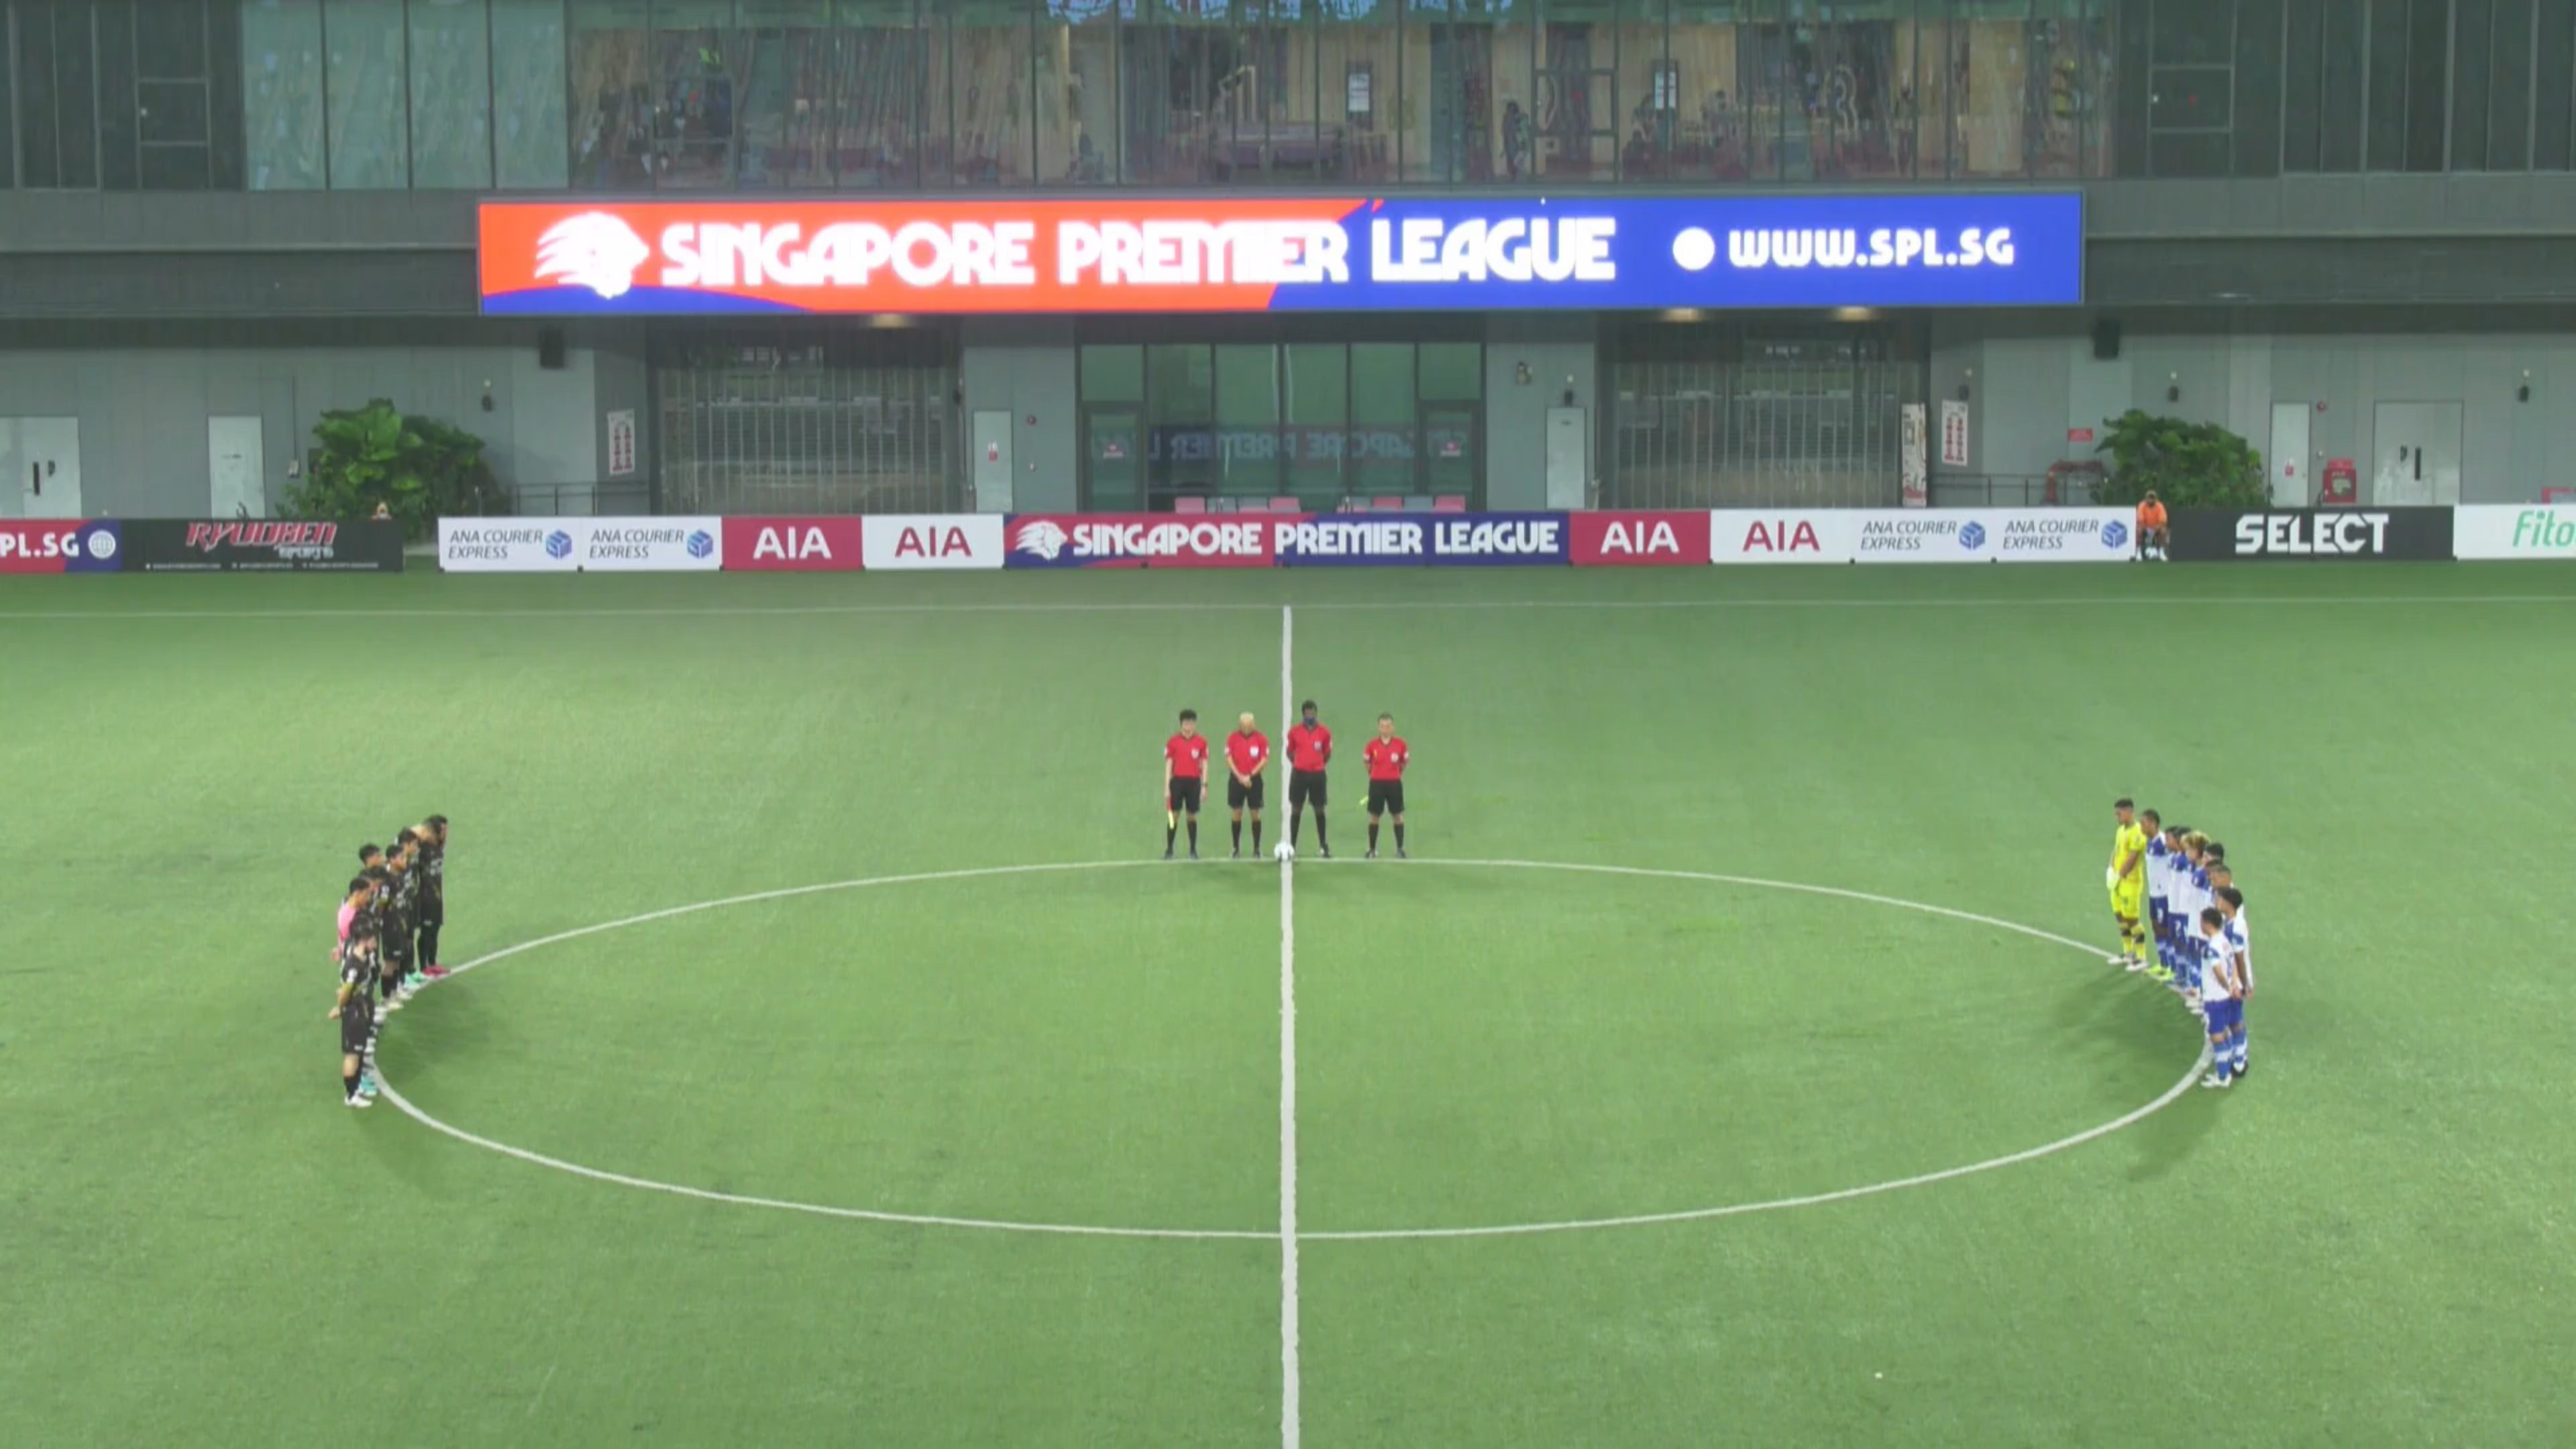 SPL : Tanjong Pagar Utd prevent Tampines Rovers from catching up with top 3, with 2-2 draw!